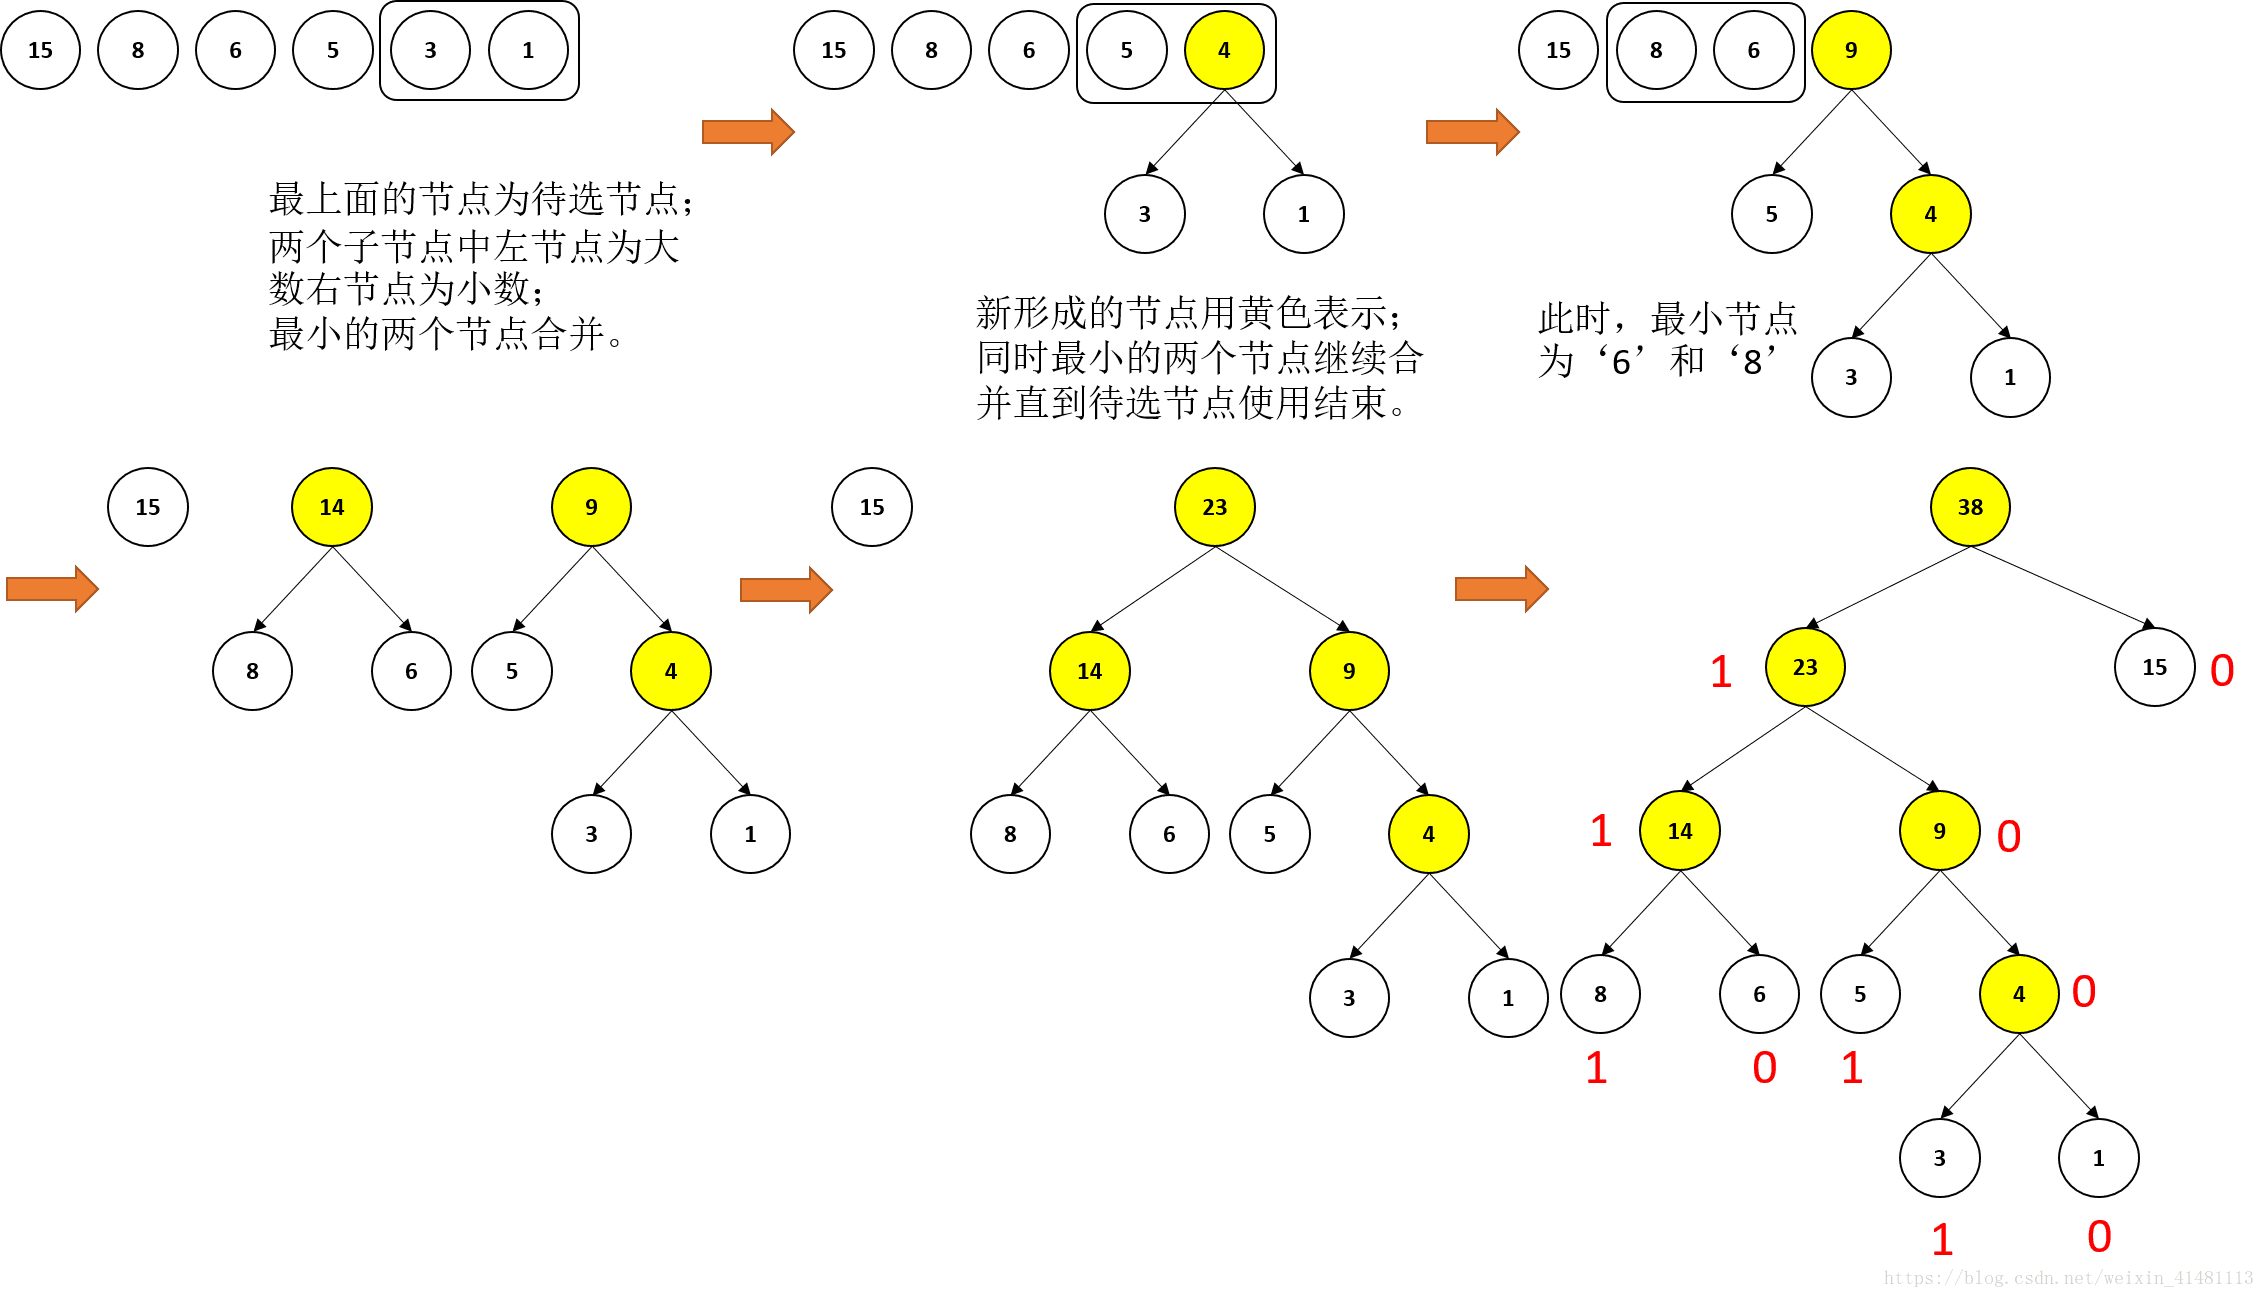 Word vector representation learning method: word2vec and